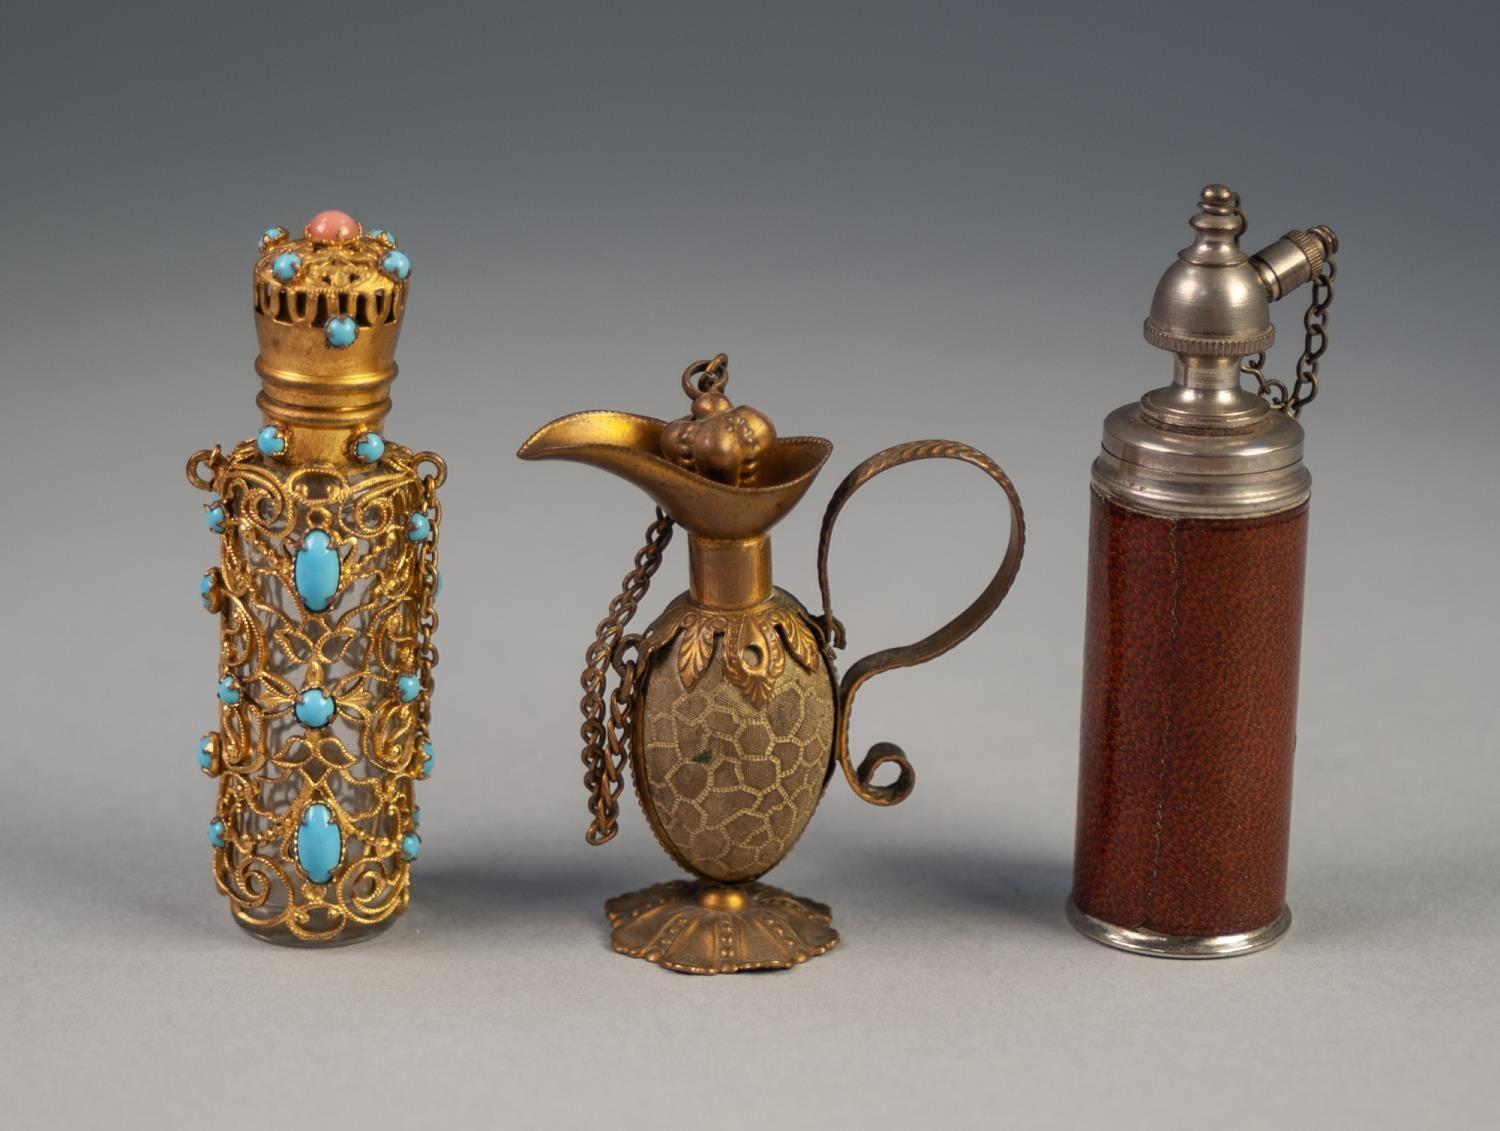 Lot 707 - EARLY 20th CENTURY MOULDED GLASS CYLINDRICAL SCENT BOTTLE, clad in gilt metal filigree with hinged